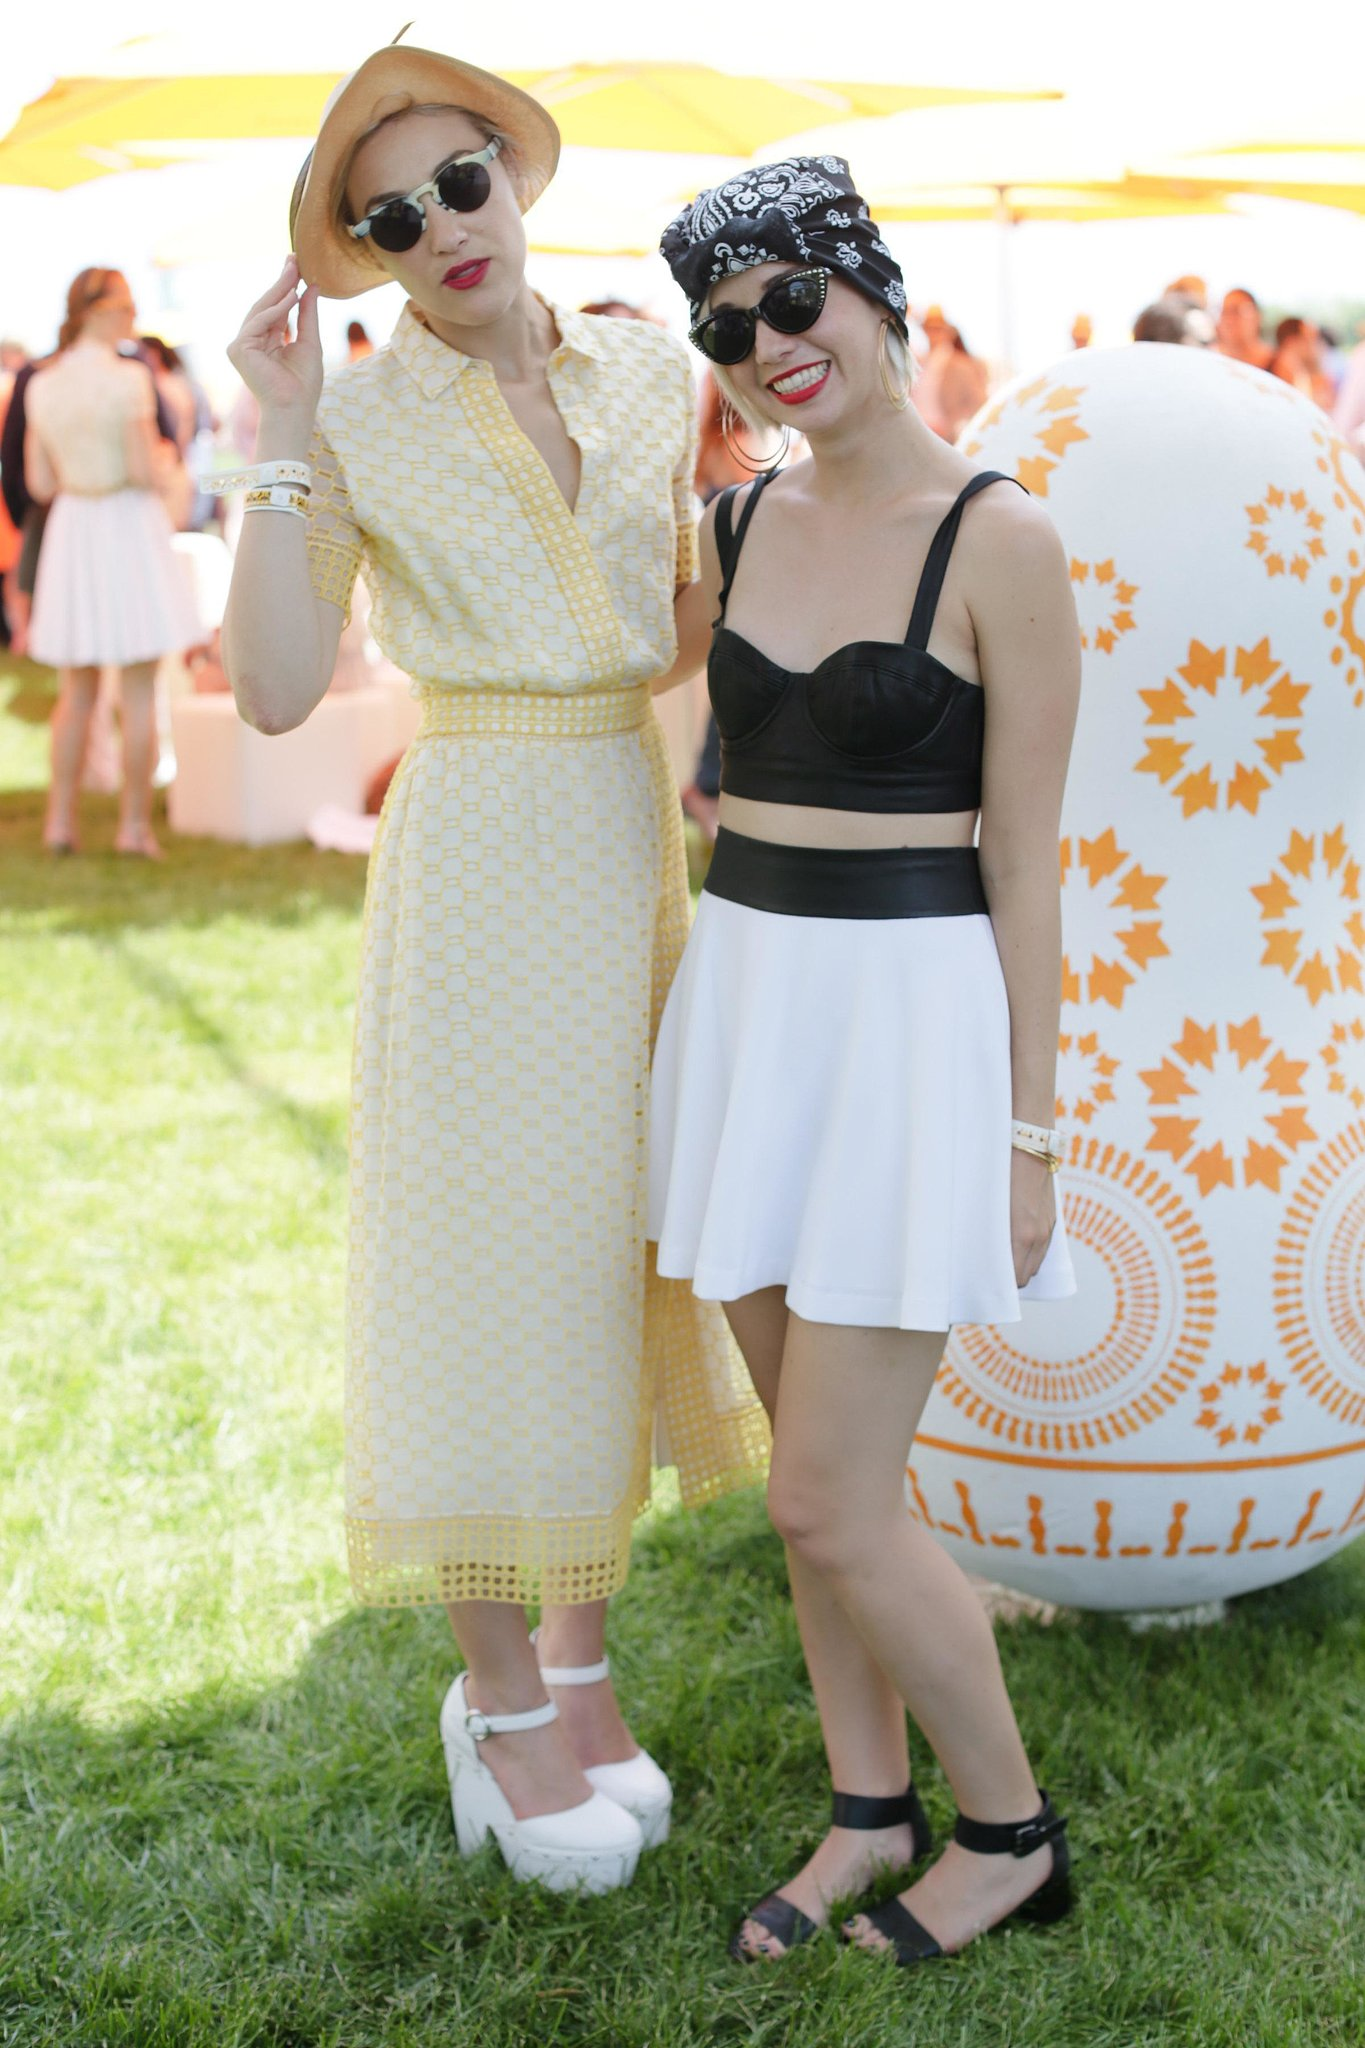 Mia Moretti and Caitlin Moe at the sixth annual Veuve Clicquot Polo